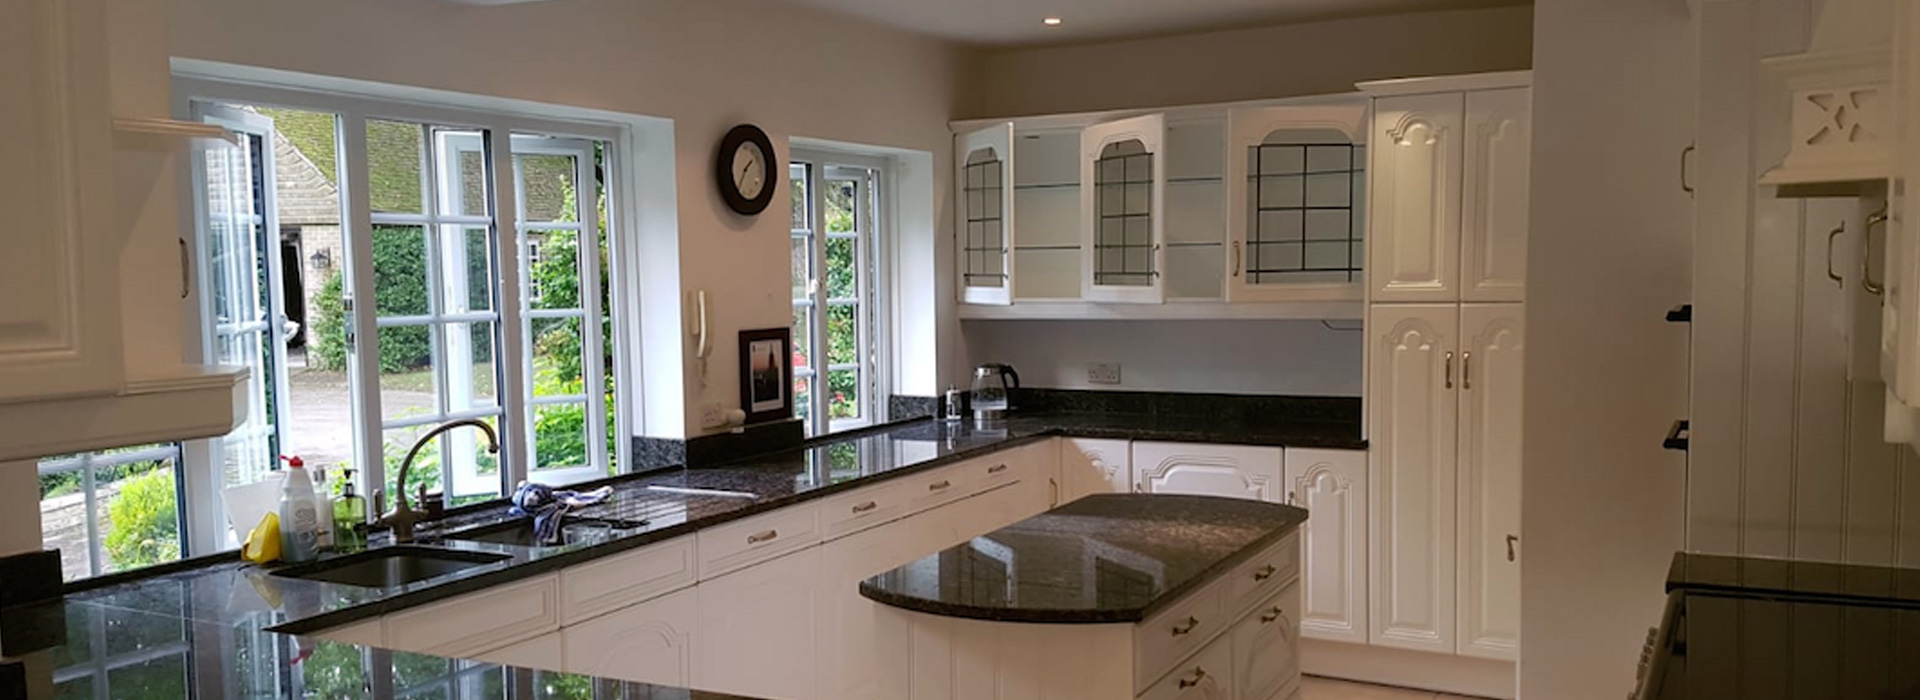 The Kitchen Respray Company - Specialists in bespoke & custom painted kitchen respraying and finishing